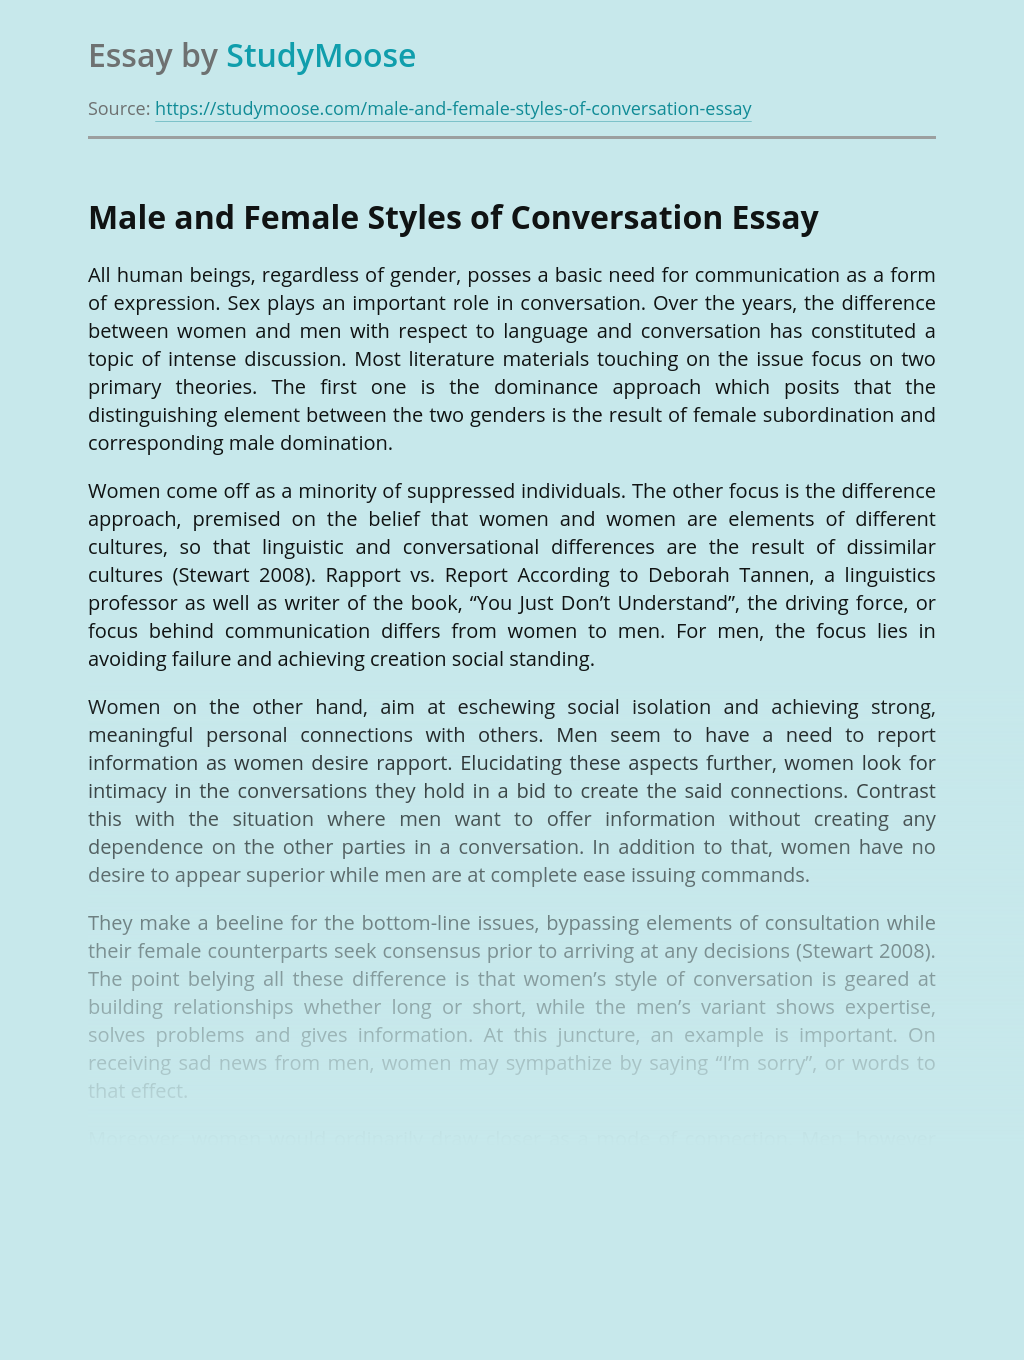 Male and Female Styles of Communication